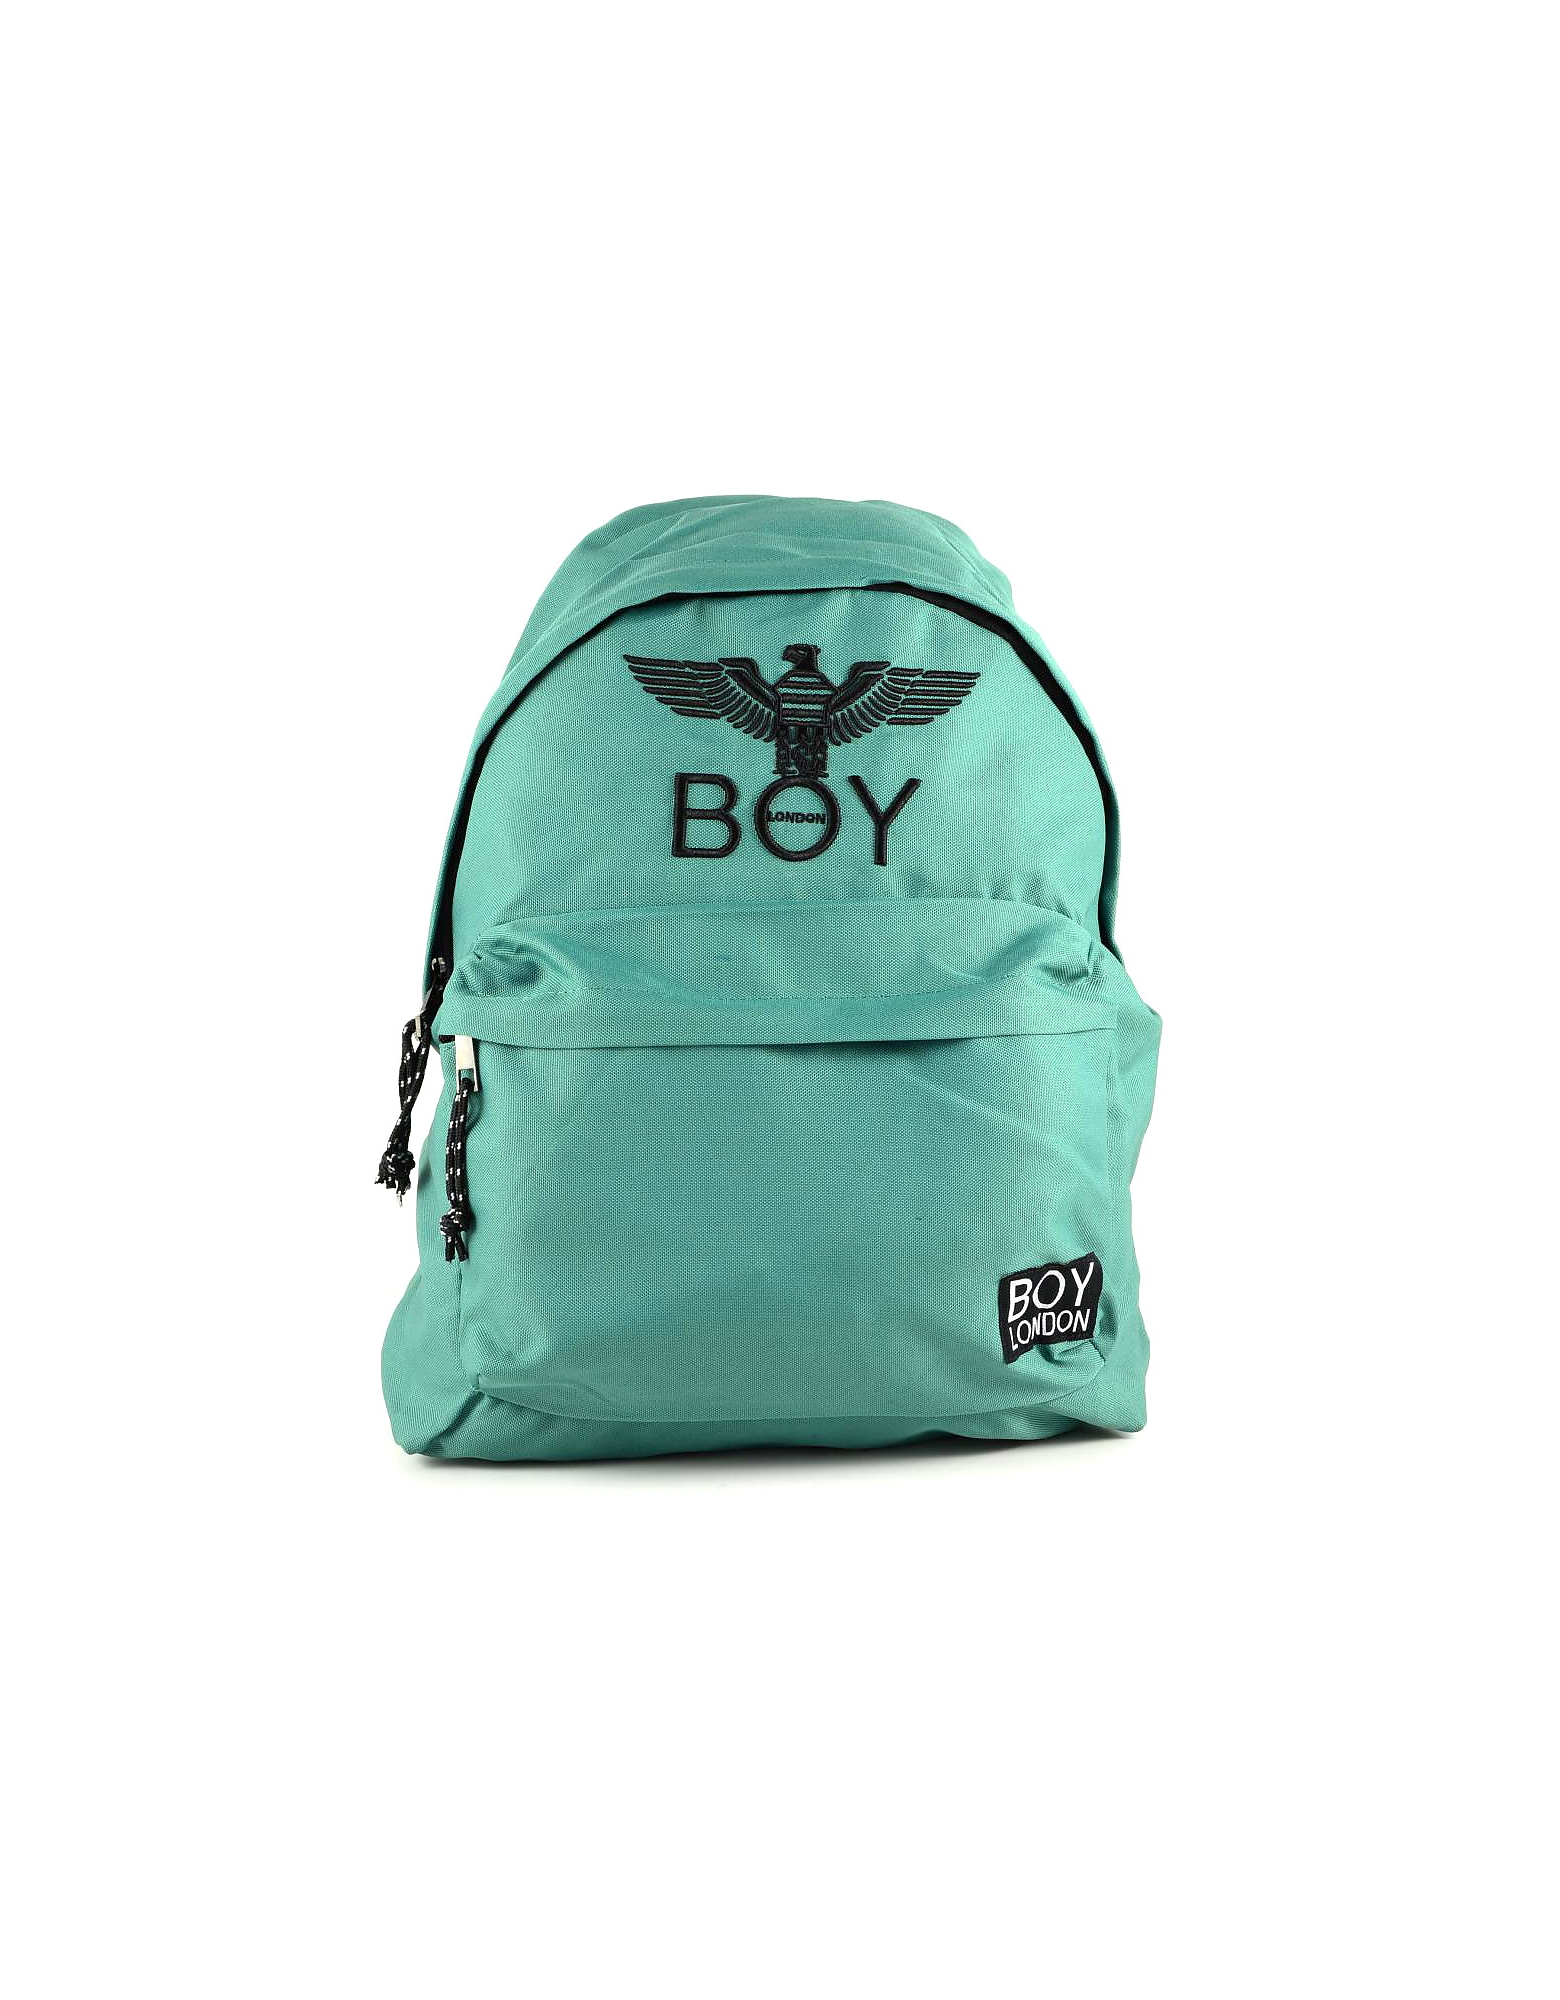 BOY London Designer Men's Bags, Emerald Green Boy Eagle Backpack